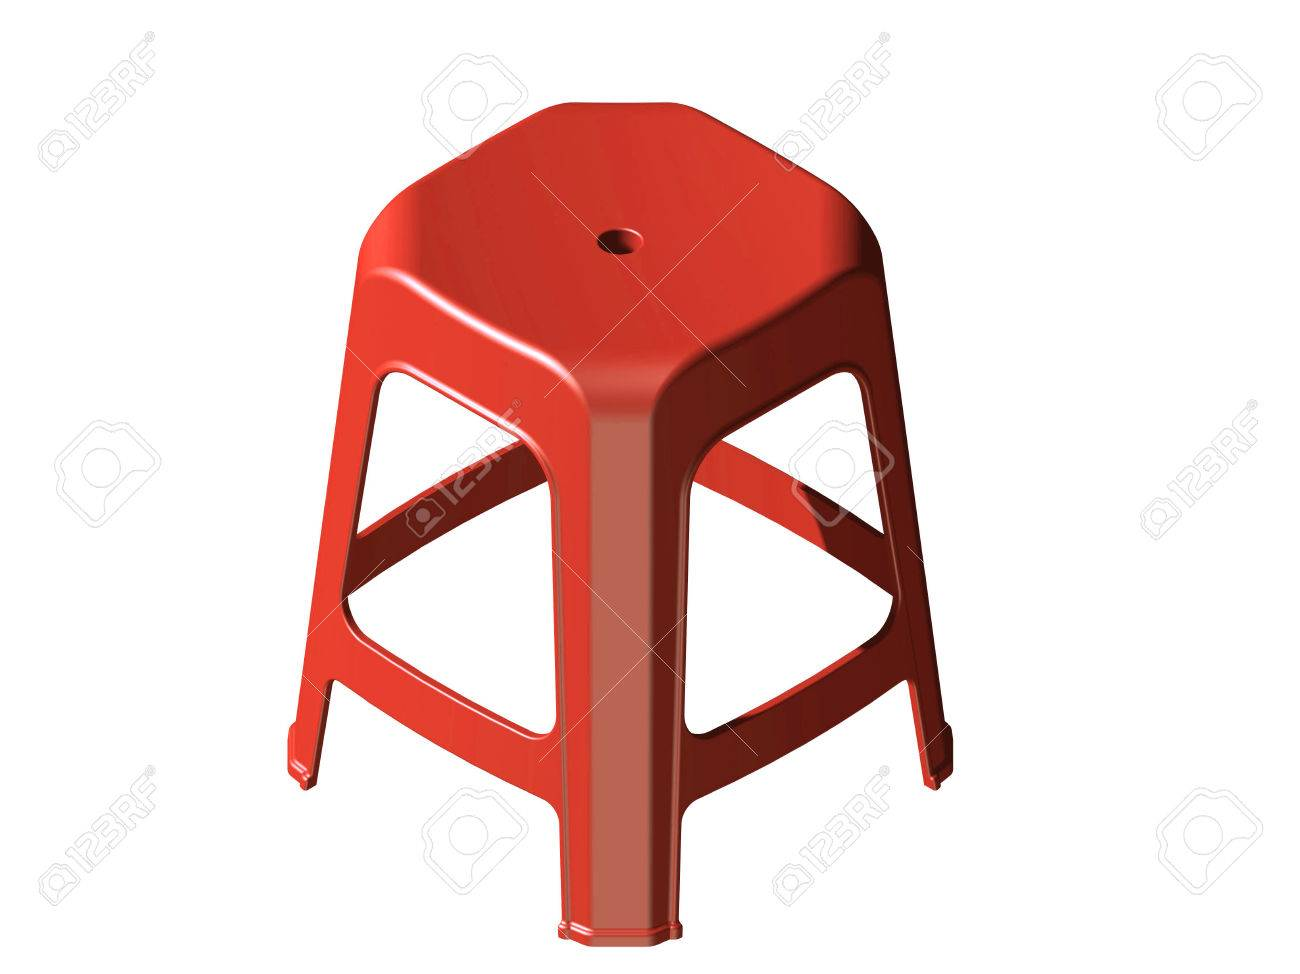 3D plastic stool chair Isometric view Red color Stock Photo - 25836898  sc 1 st  123RF Stock Photos & 3D Plastic Stool Chair Isometric View Red Color Stock Photo ... islam-shia.org